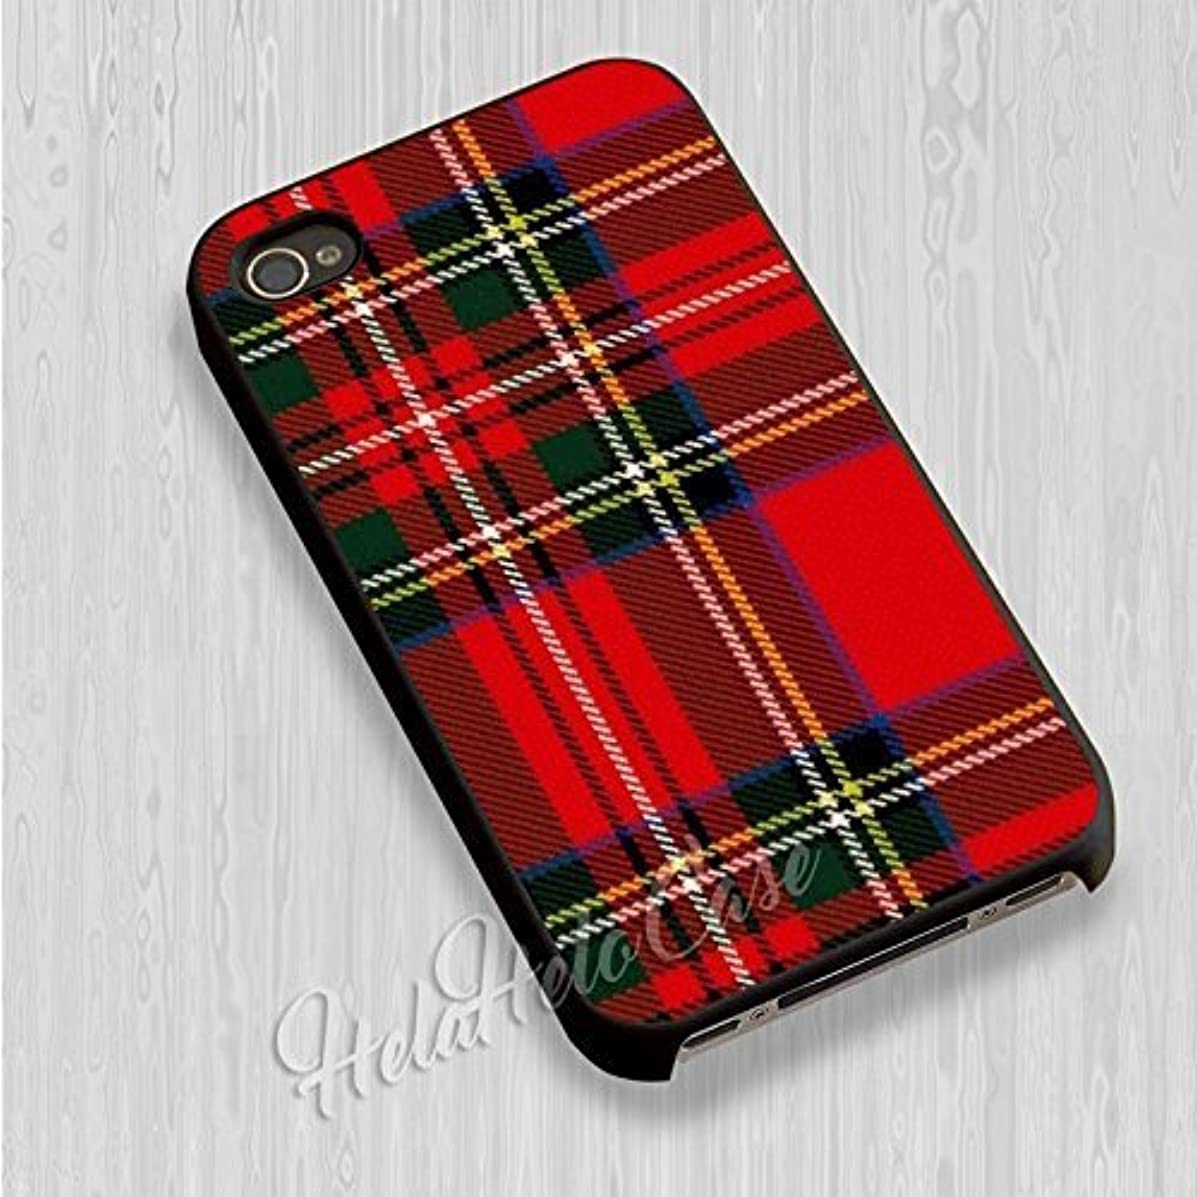 Deal Market LLC - Red Tartan Plaid-Hard Rubber Phone case for Apple iPhone 7- Custom Made and Shipped from USA